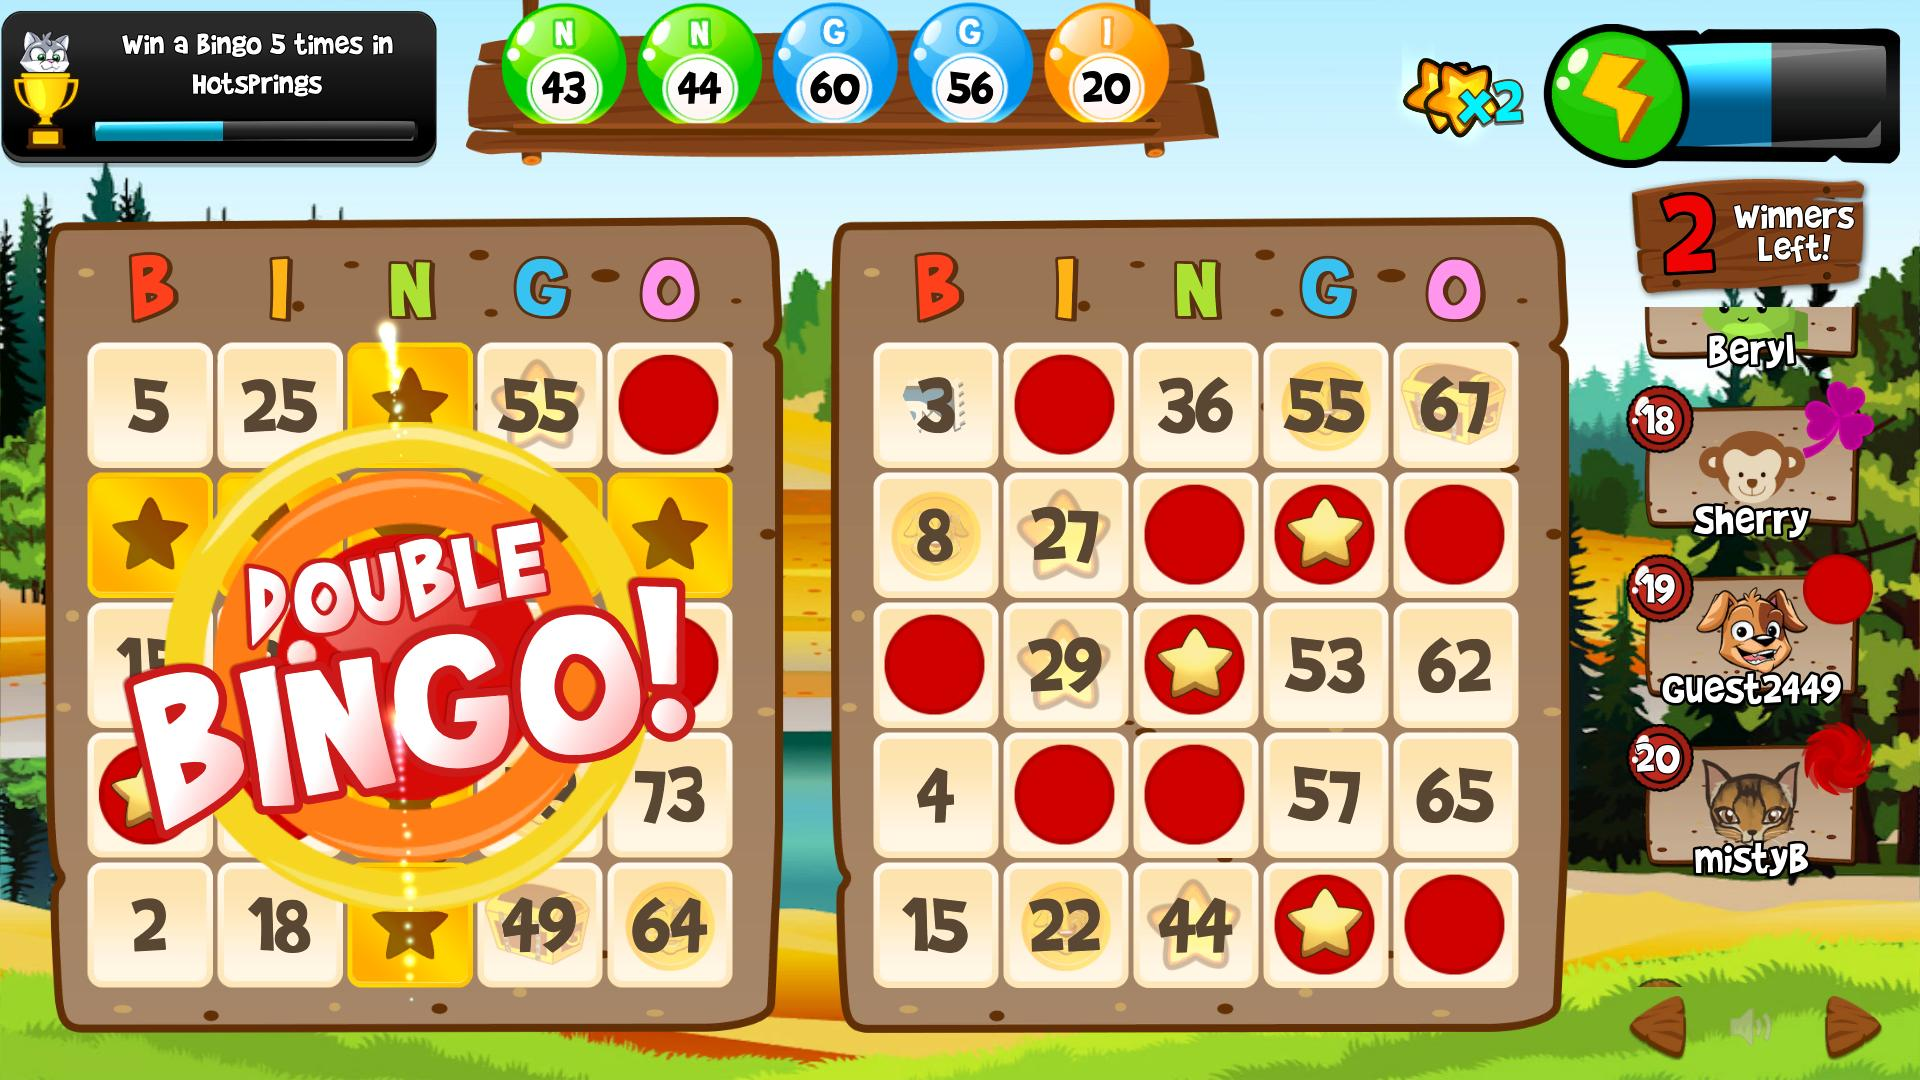 Bingo Abradoodle - Bingo Games Free to Play! 3.0.02 Screenshot 8